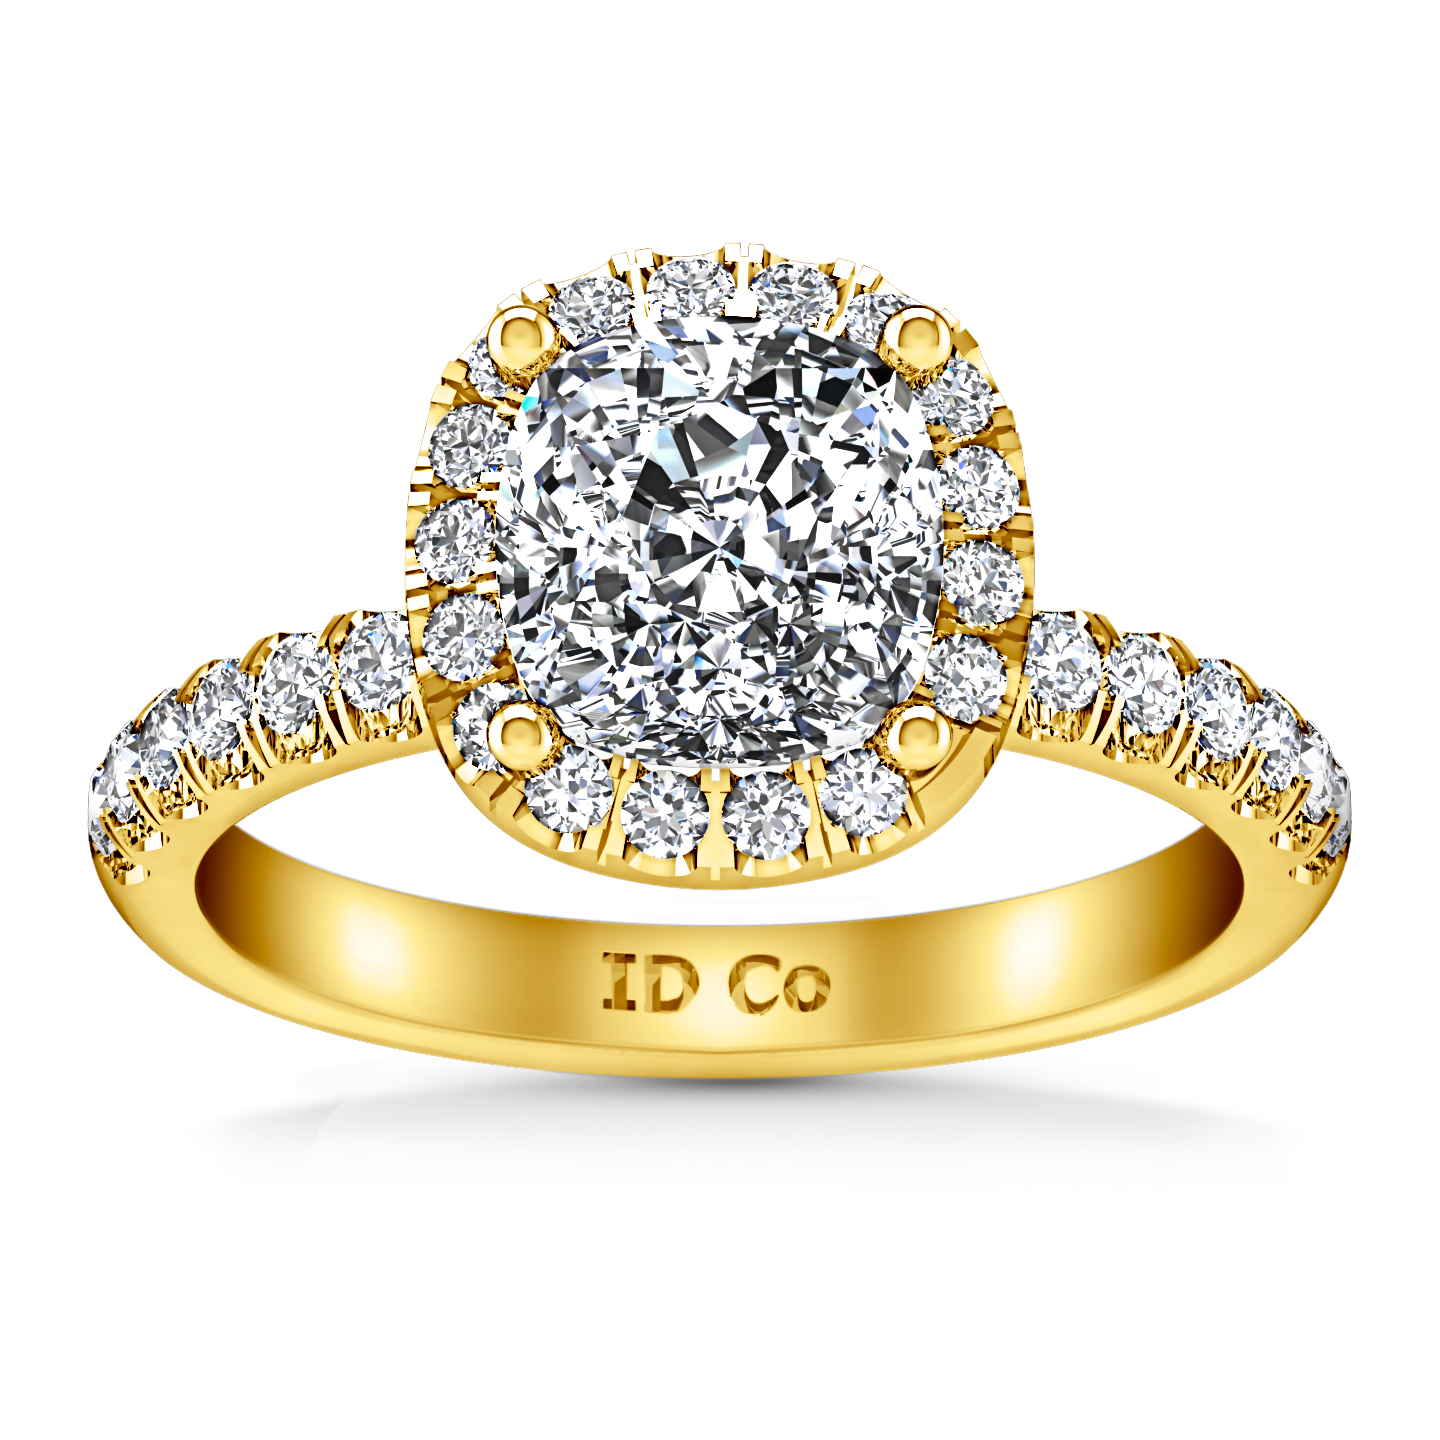 ct in tw rings diamond white pave shank prong cut ring engagement platinum jewellery classic cushion with